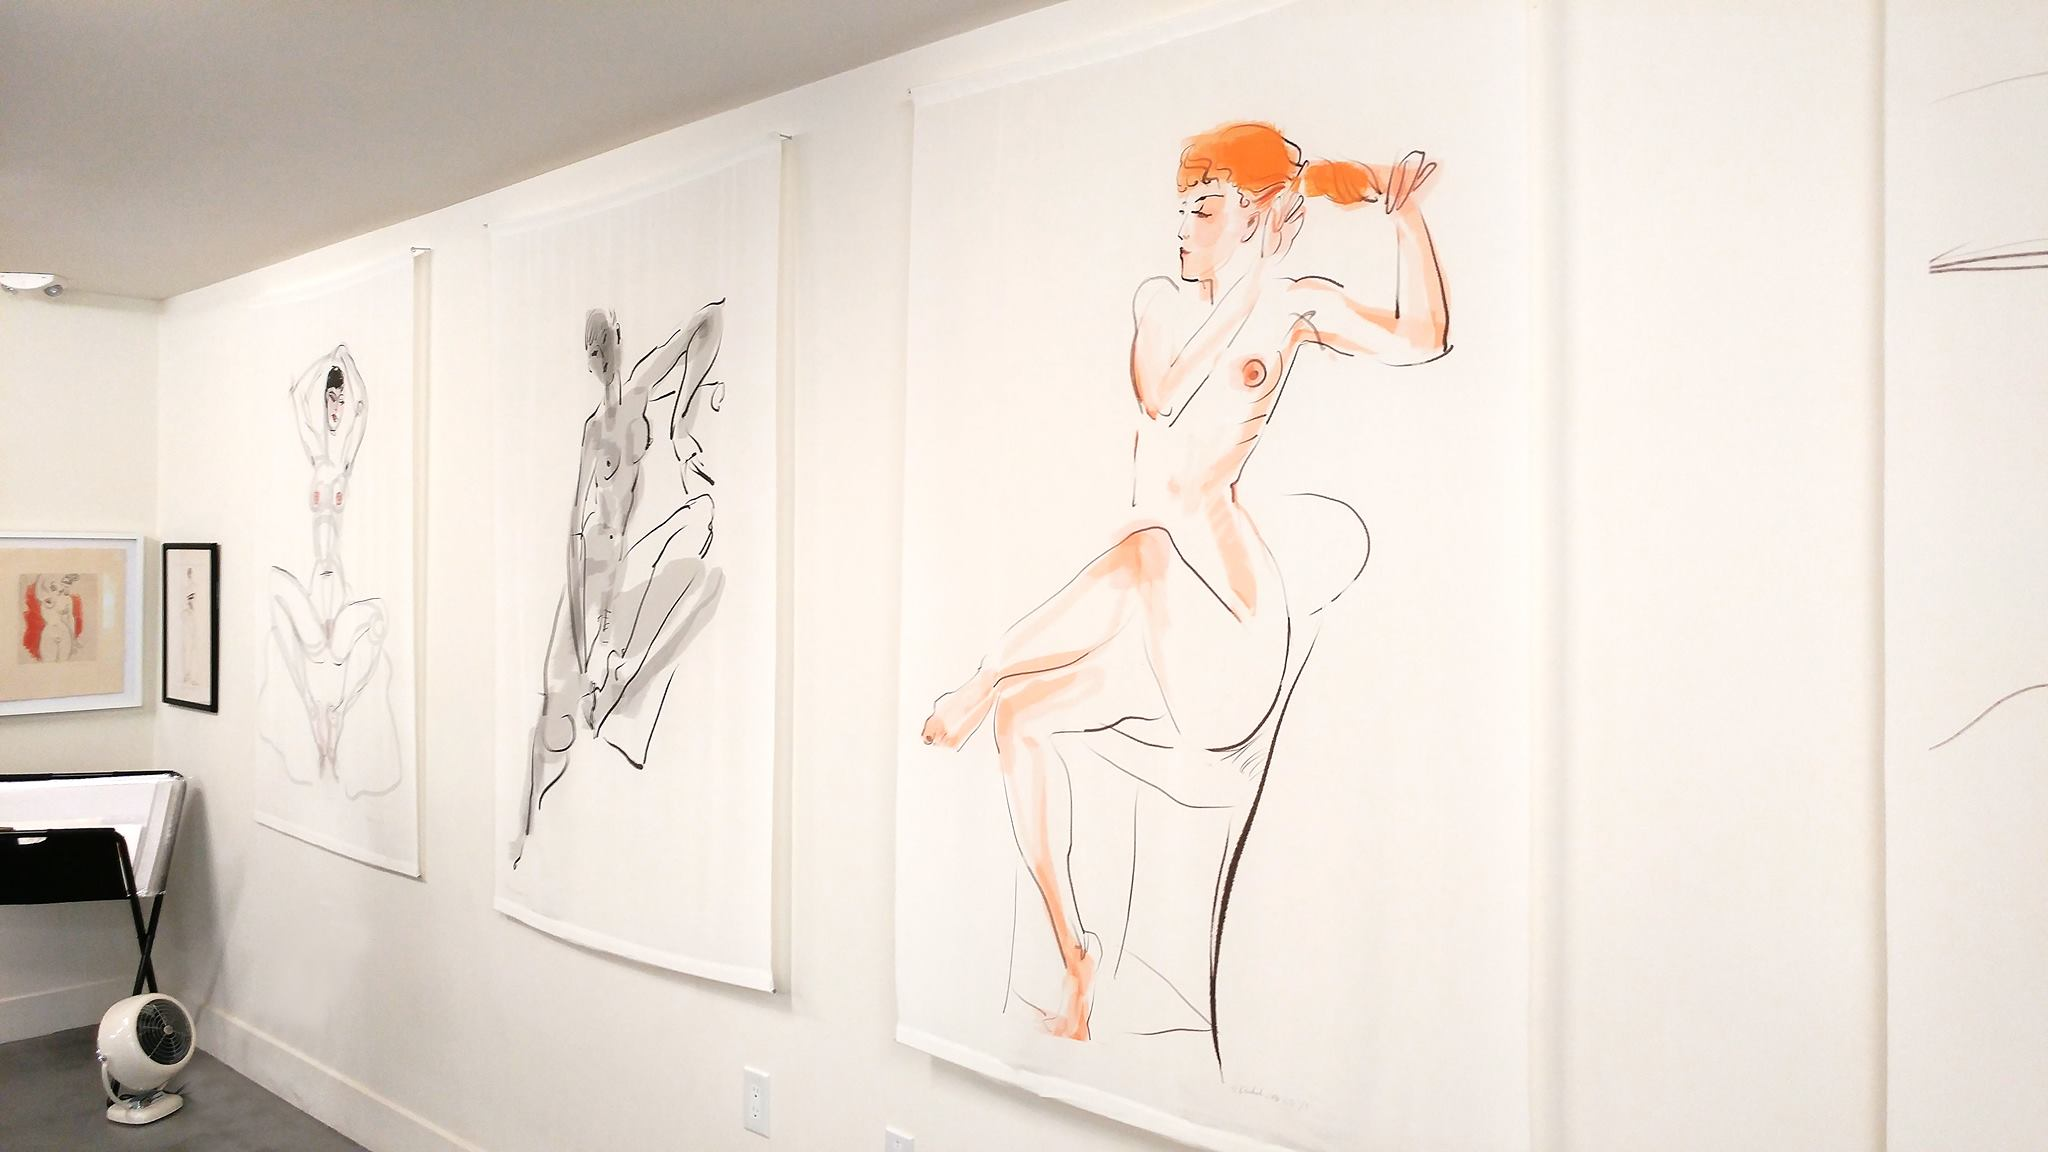 Installation view of White Silk Scroll series